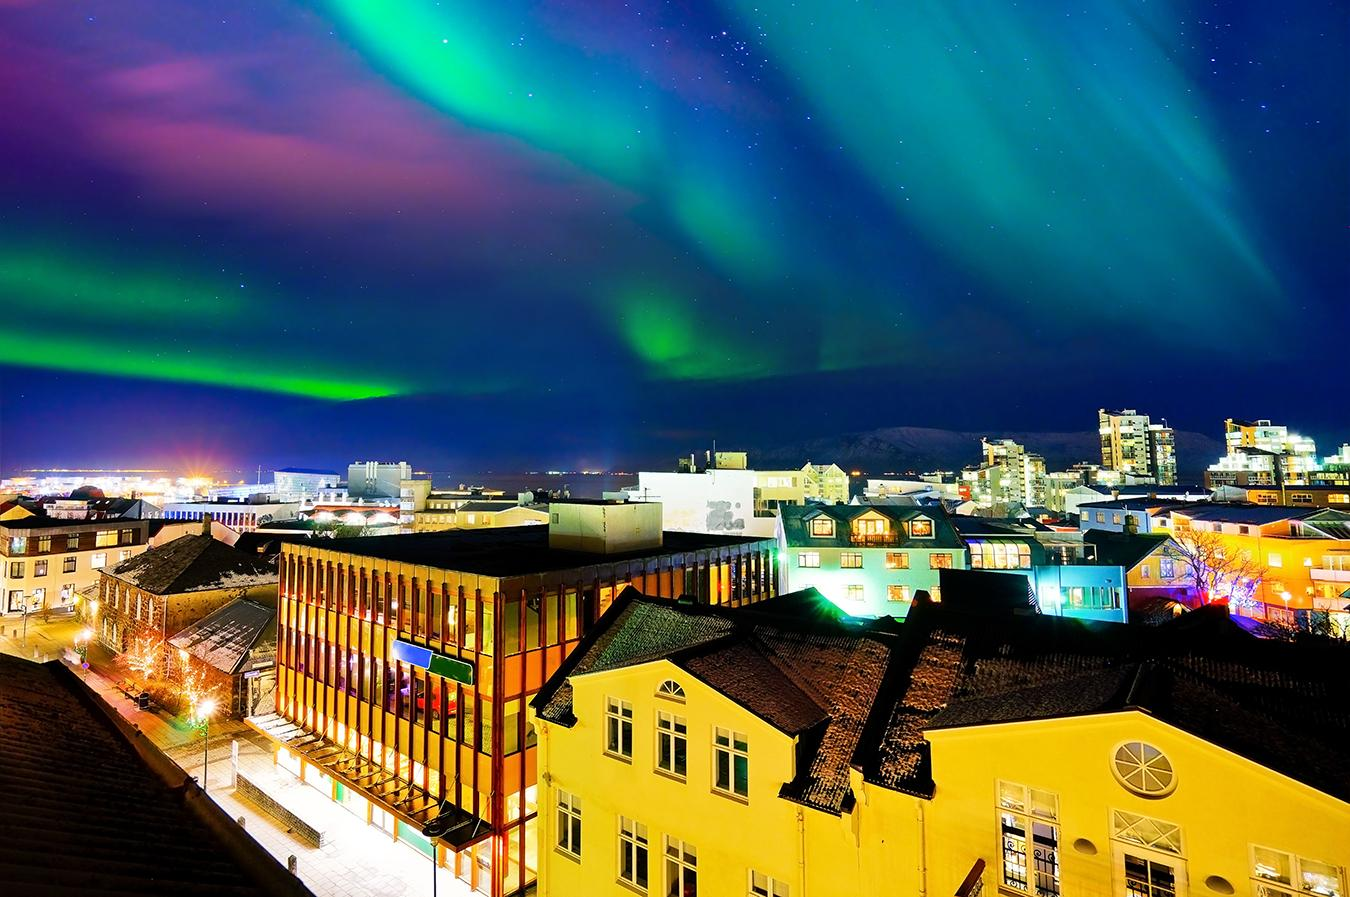 Views of the northern lights over Reykjavik Iceland